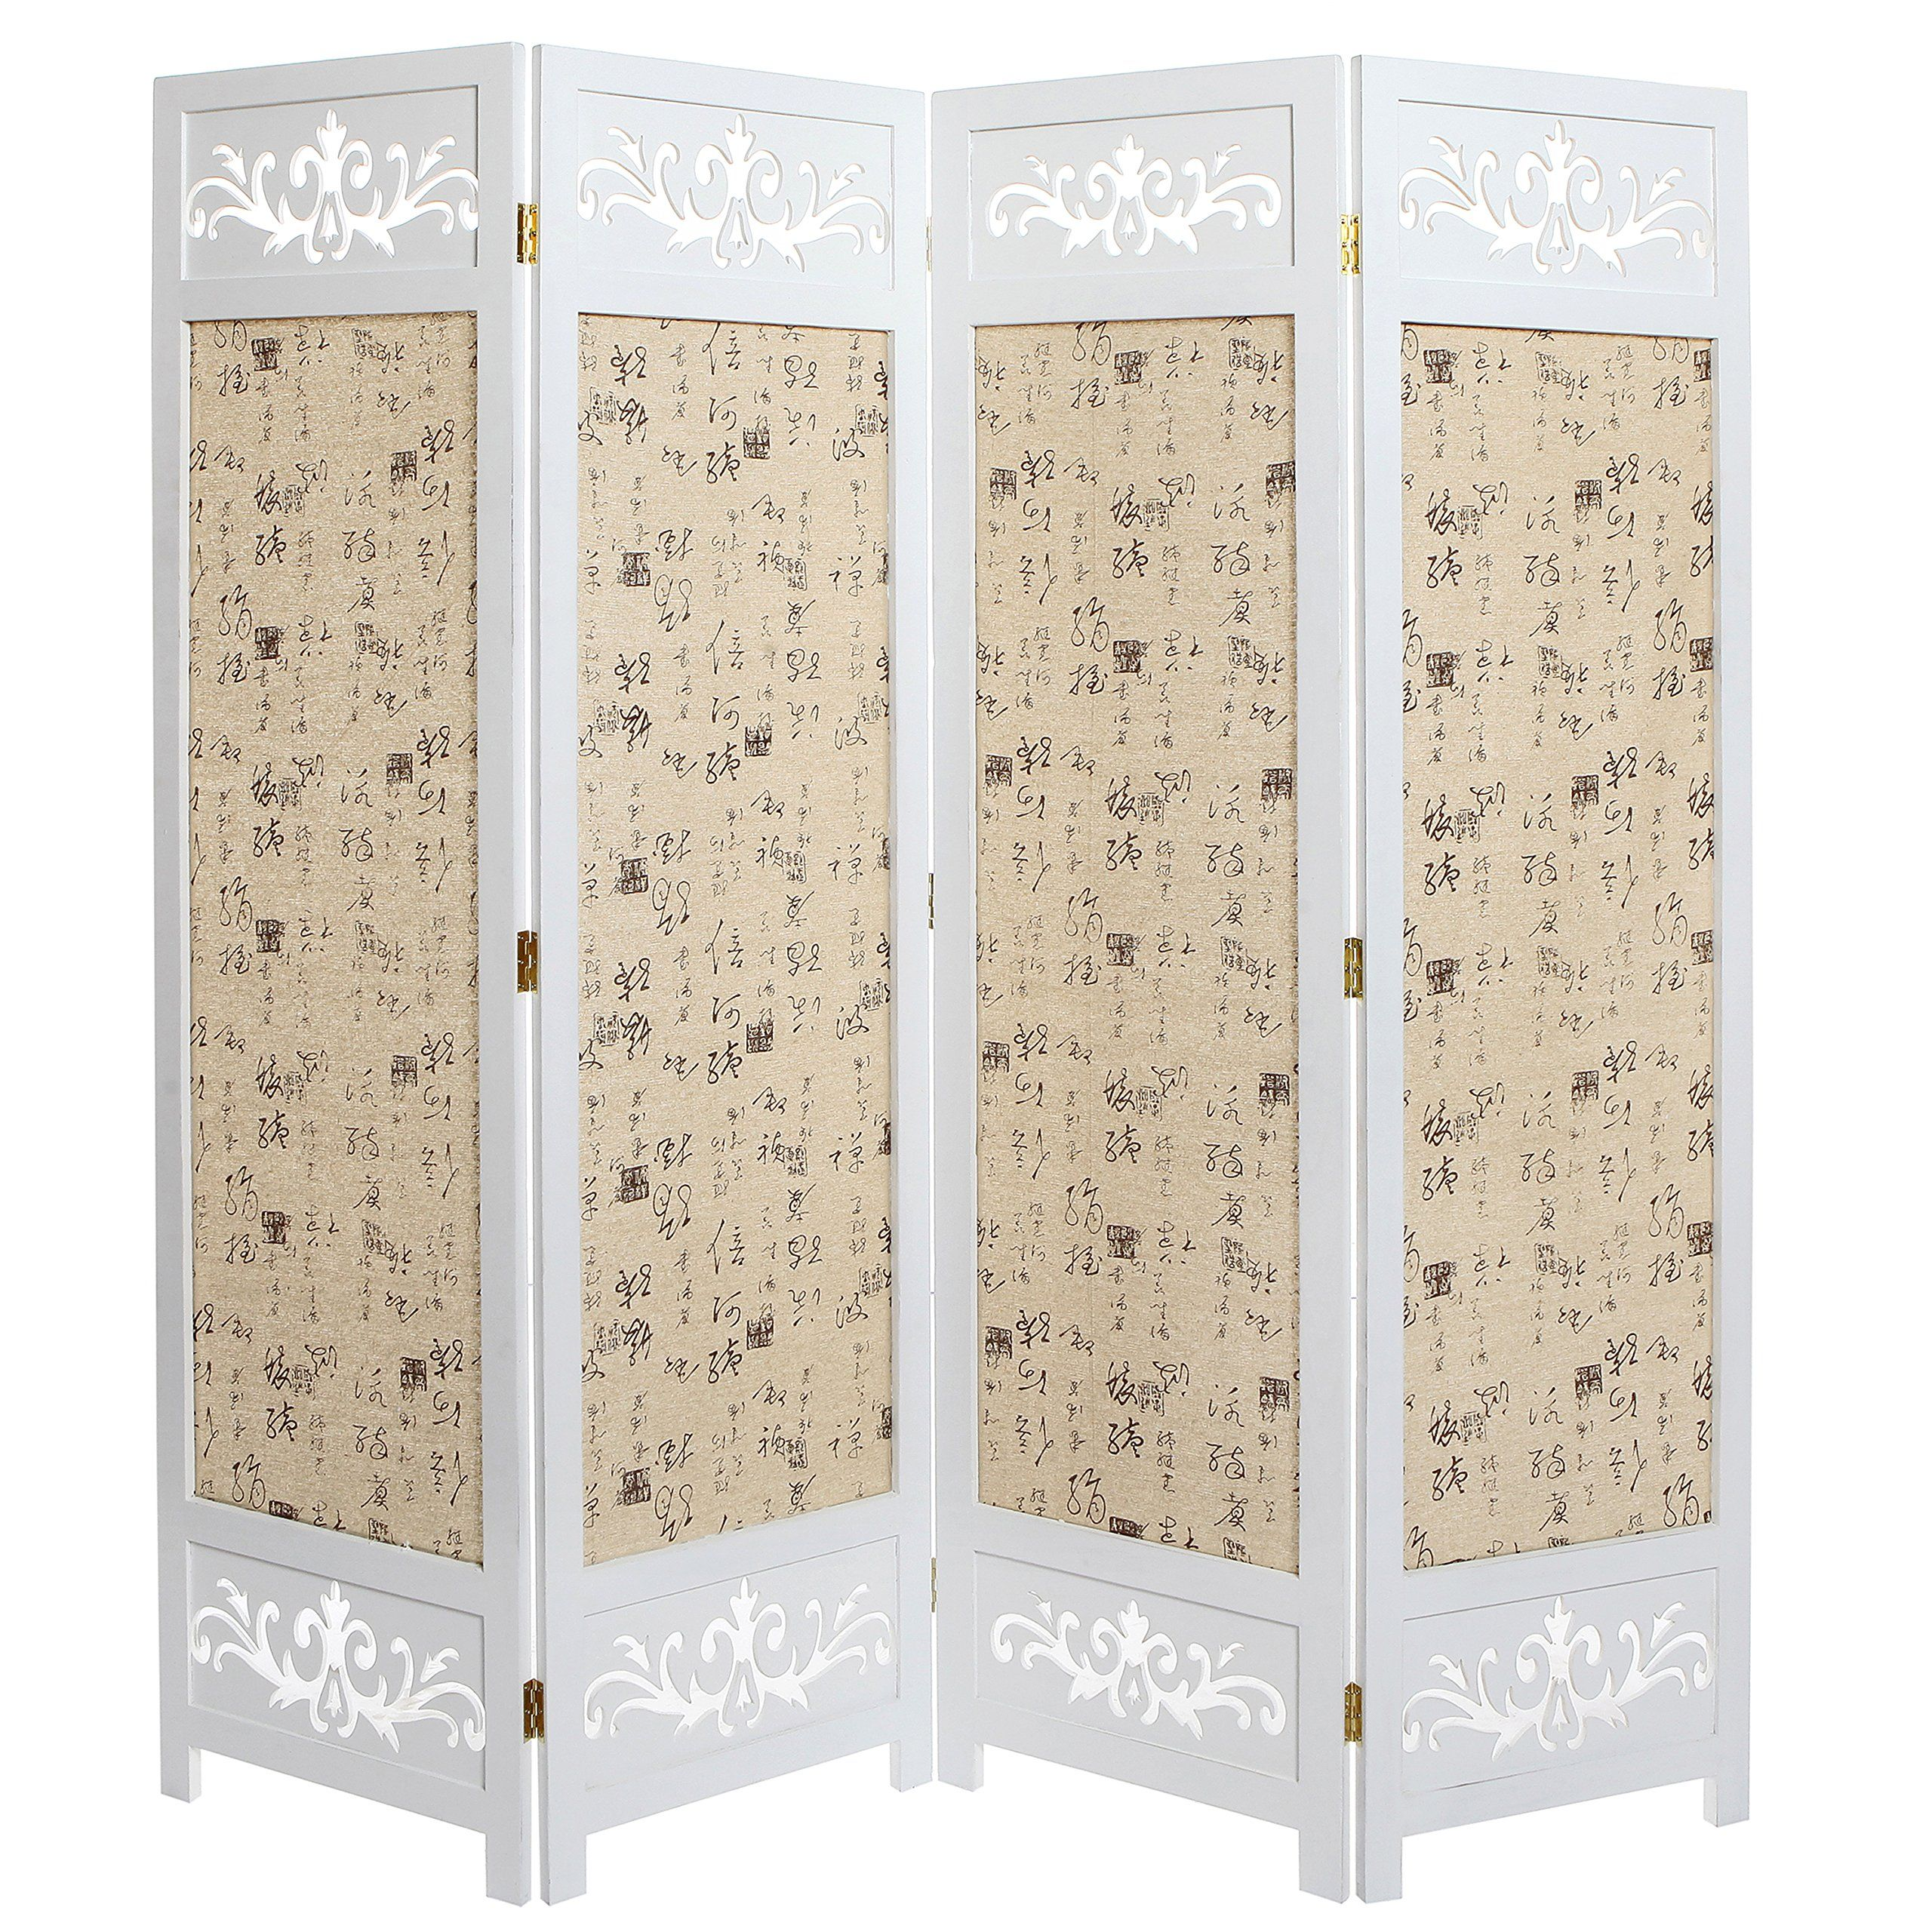 Indoor Privacy Screen Living Room Furniture Modern Furnitures Asian Oriental Design Large White Beige Wooden 4 Panel Folding Divider